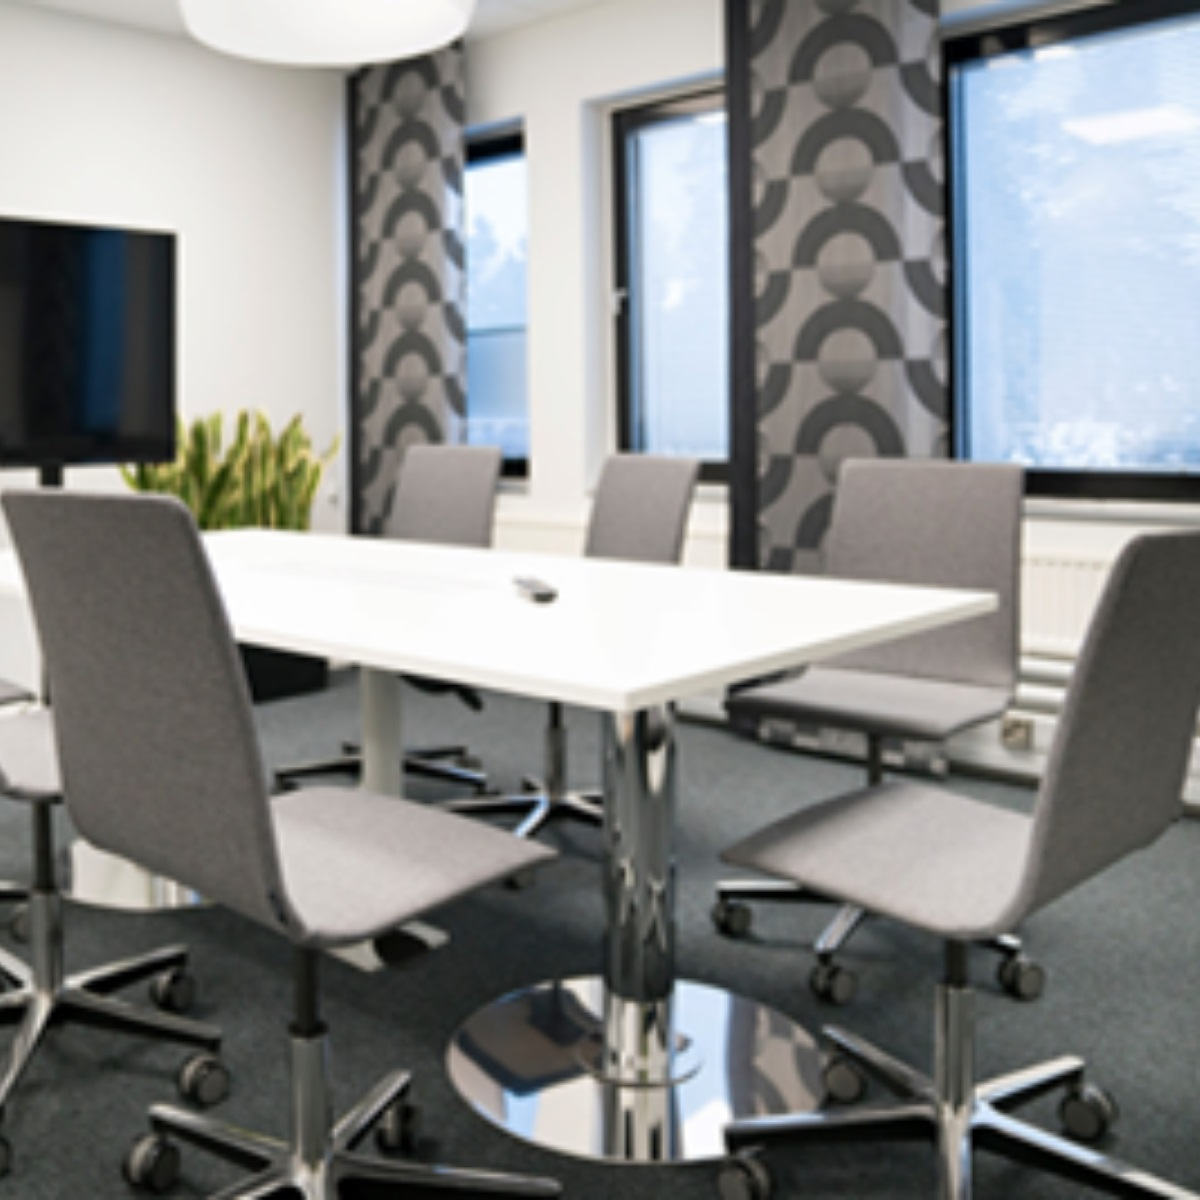 Antimicrobial indoor furniture a board room style rectangular table and 5 office chairs